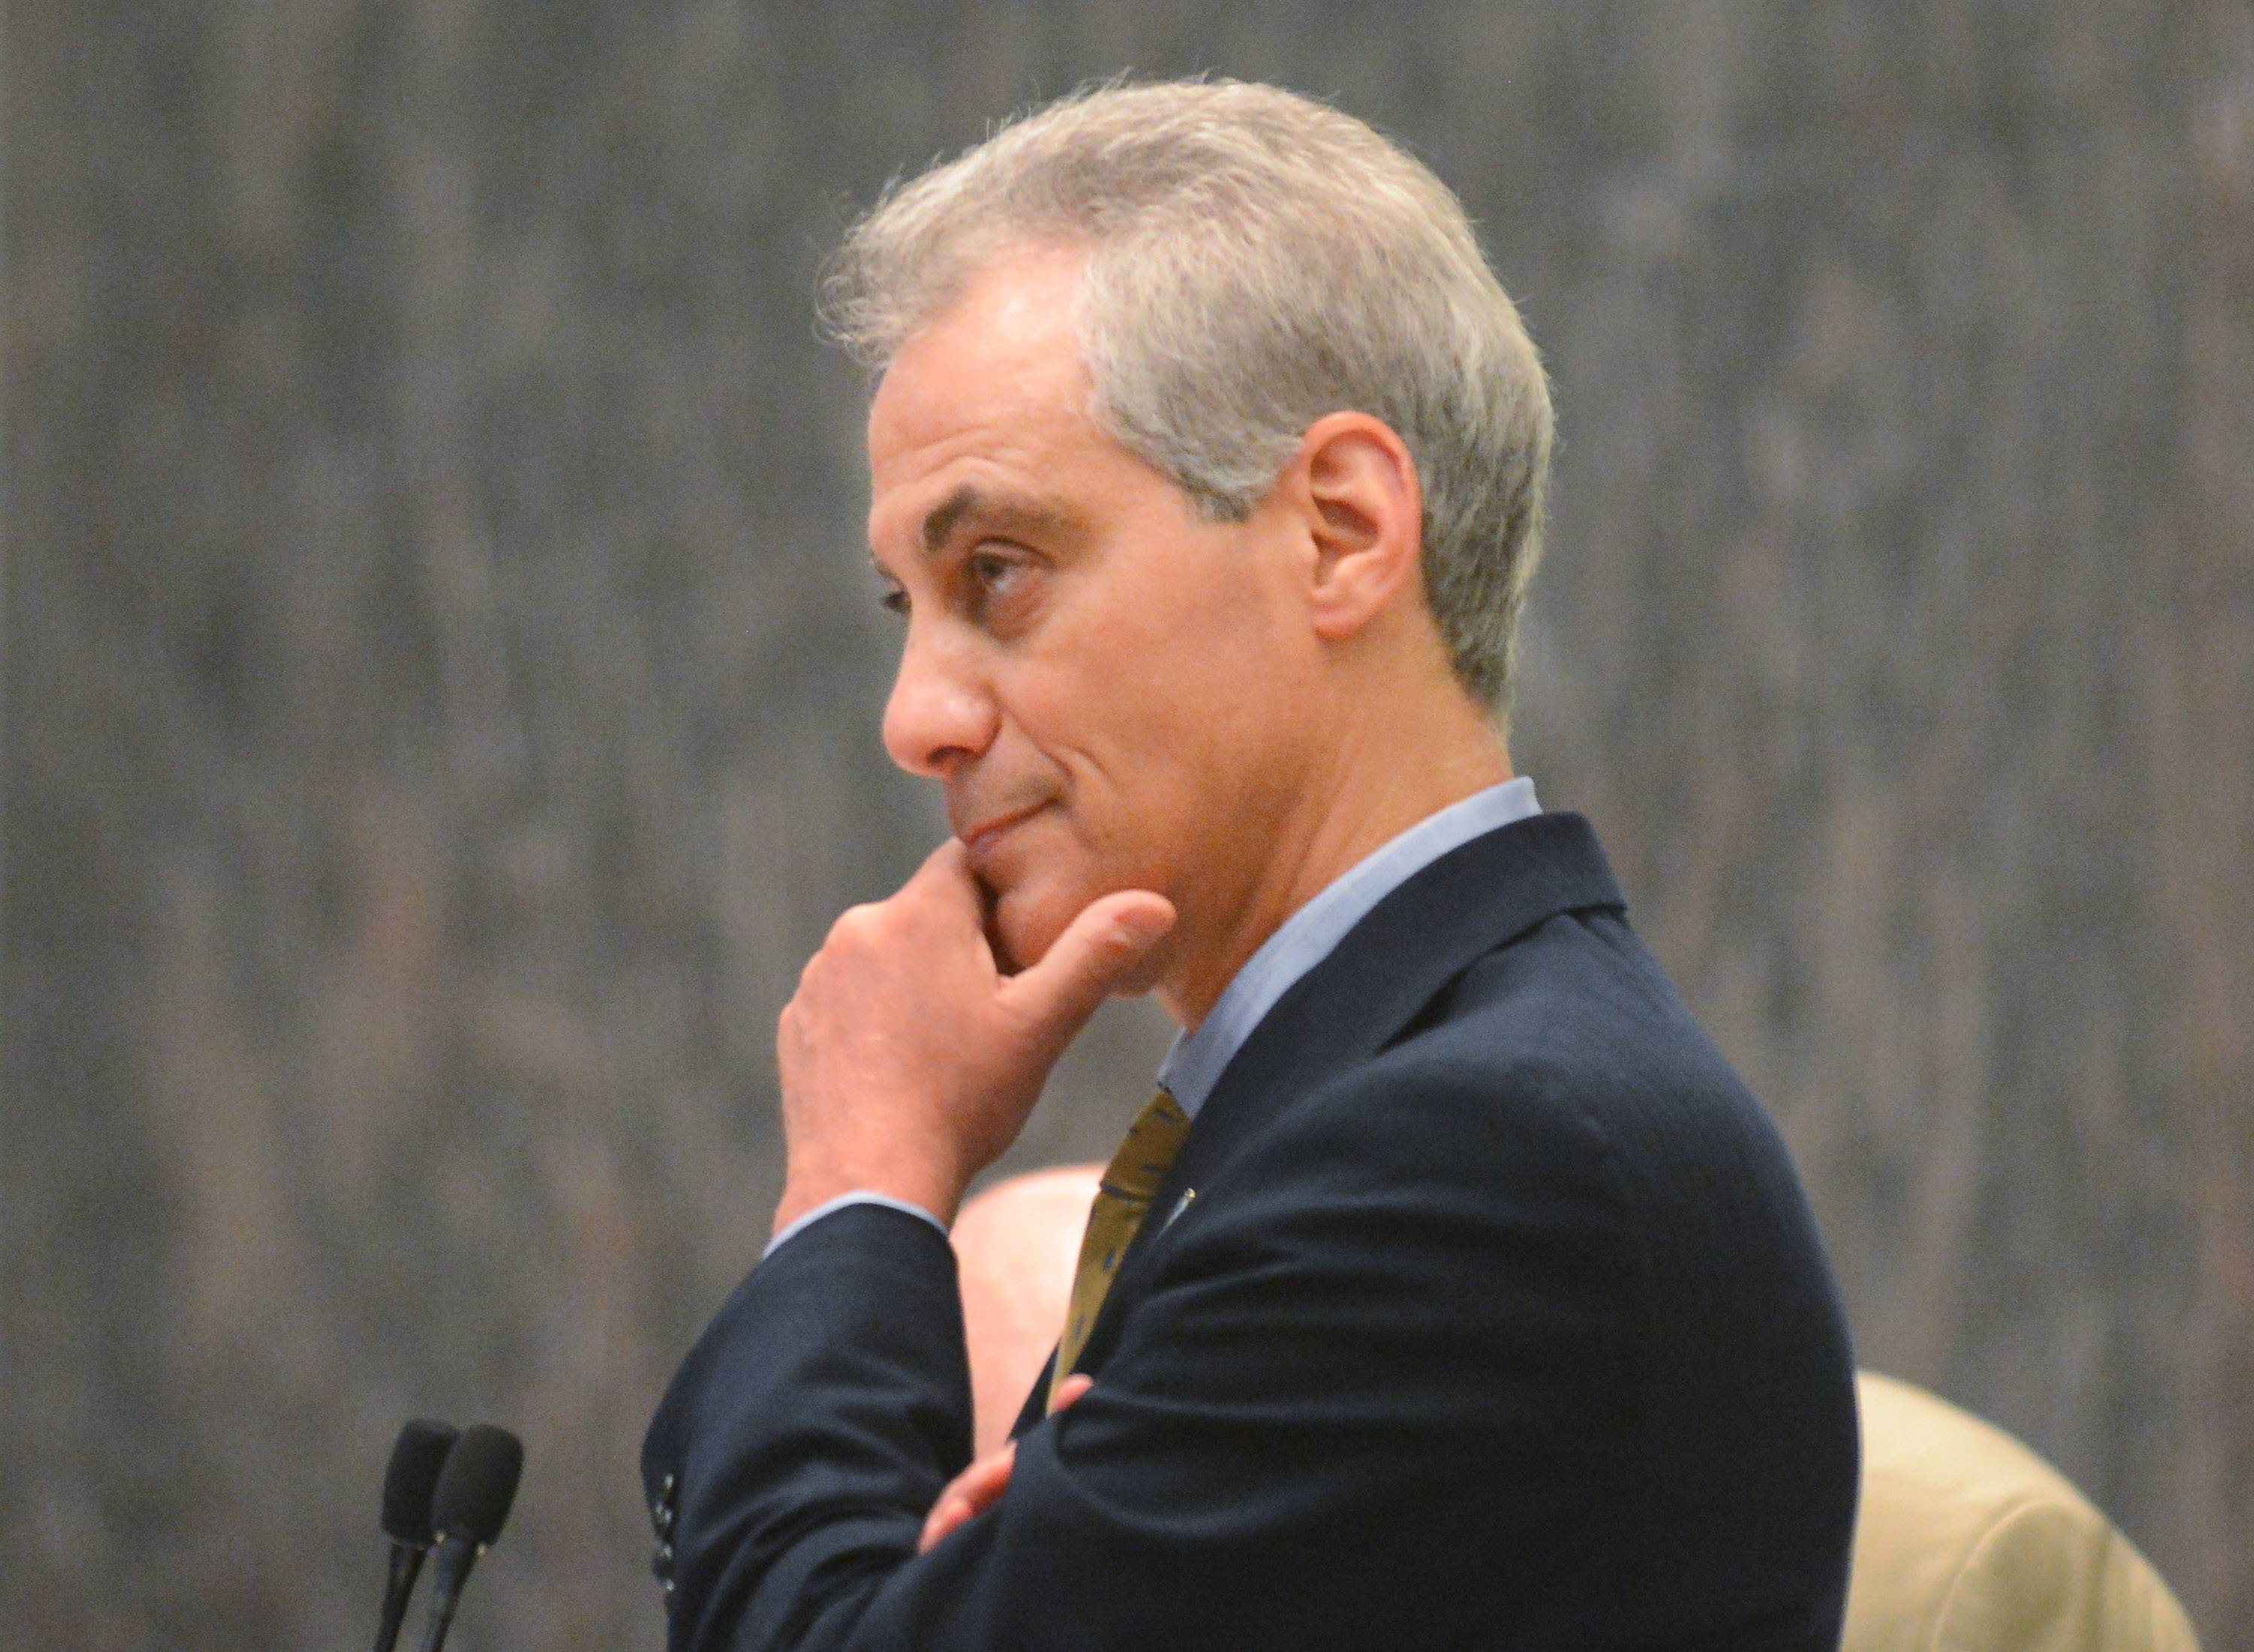 Chicago Mayor Rahm Emanuel listens during a city council meeting Wednesday During the meeting, the council approved an ordinance that dramatically limits where gun stores can operate and requires them to videotape every purchase to prevent one person from buying a gun for another.